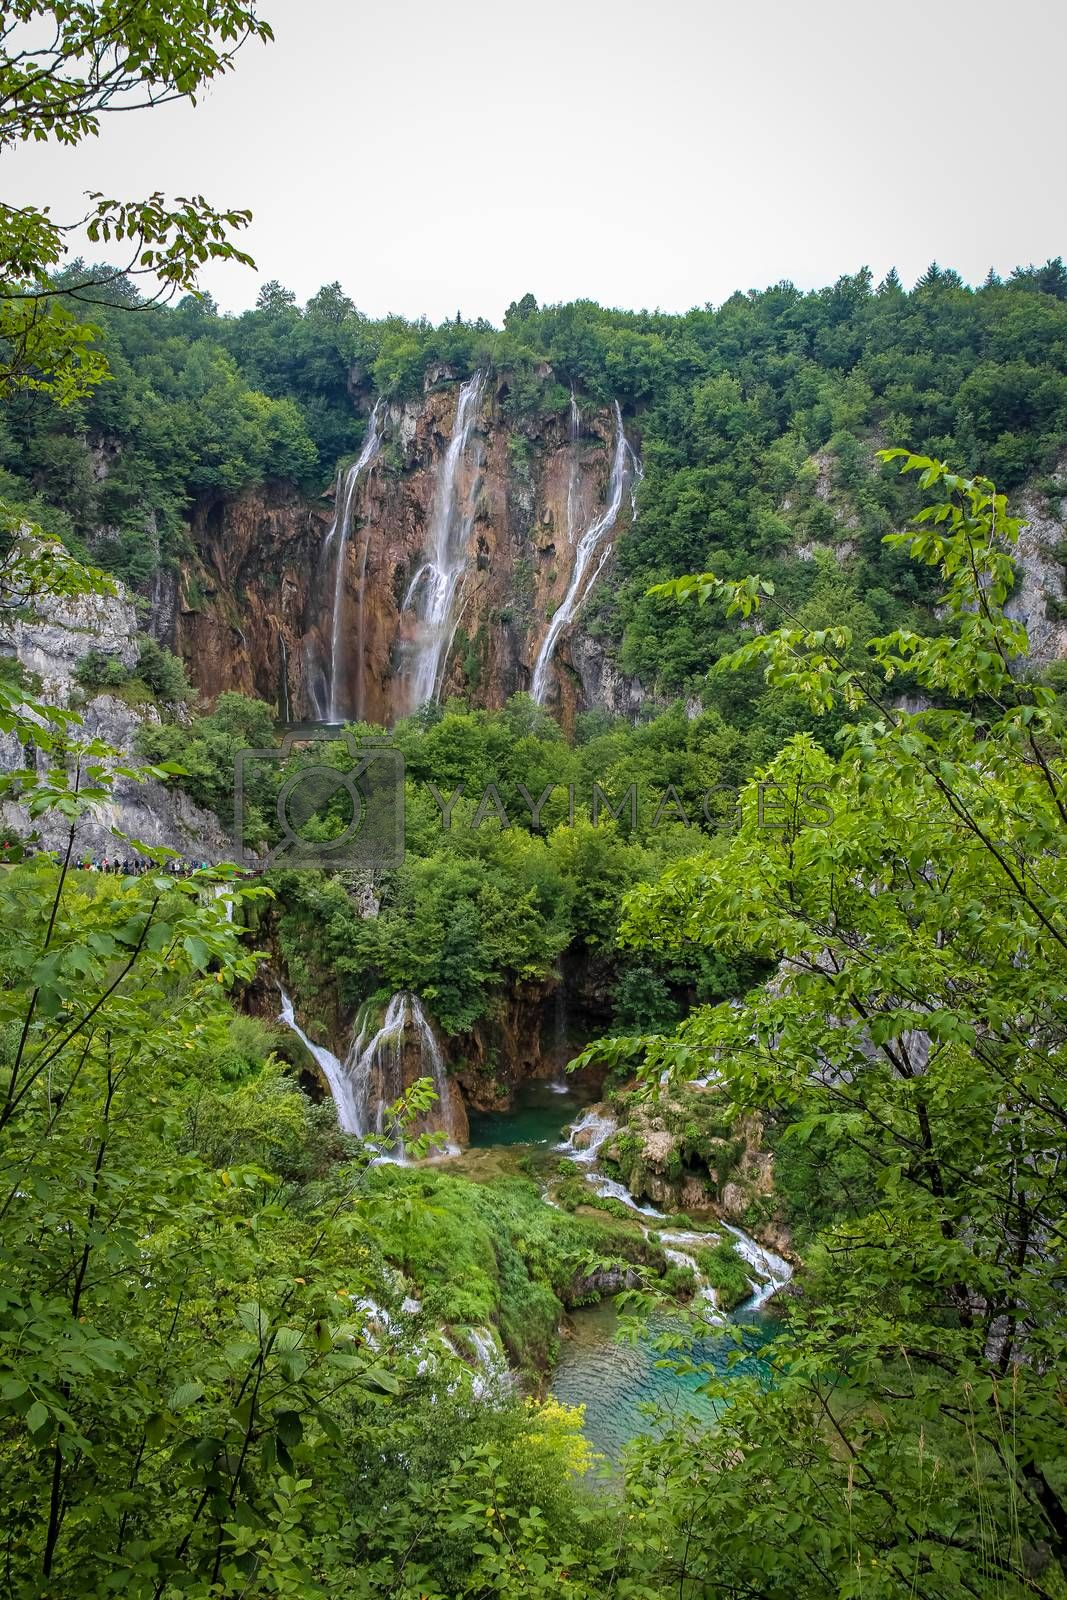 A series of large waterfalls at Plitvice Lakes, UNESCO World Heritage Site, Croatia